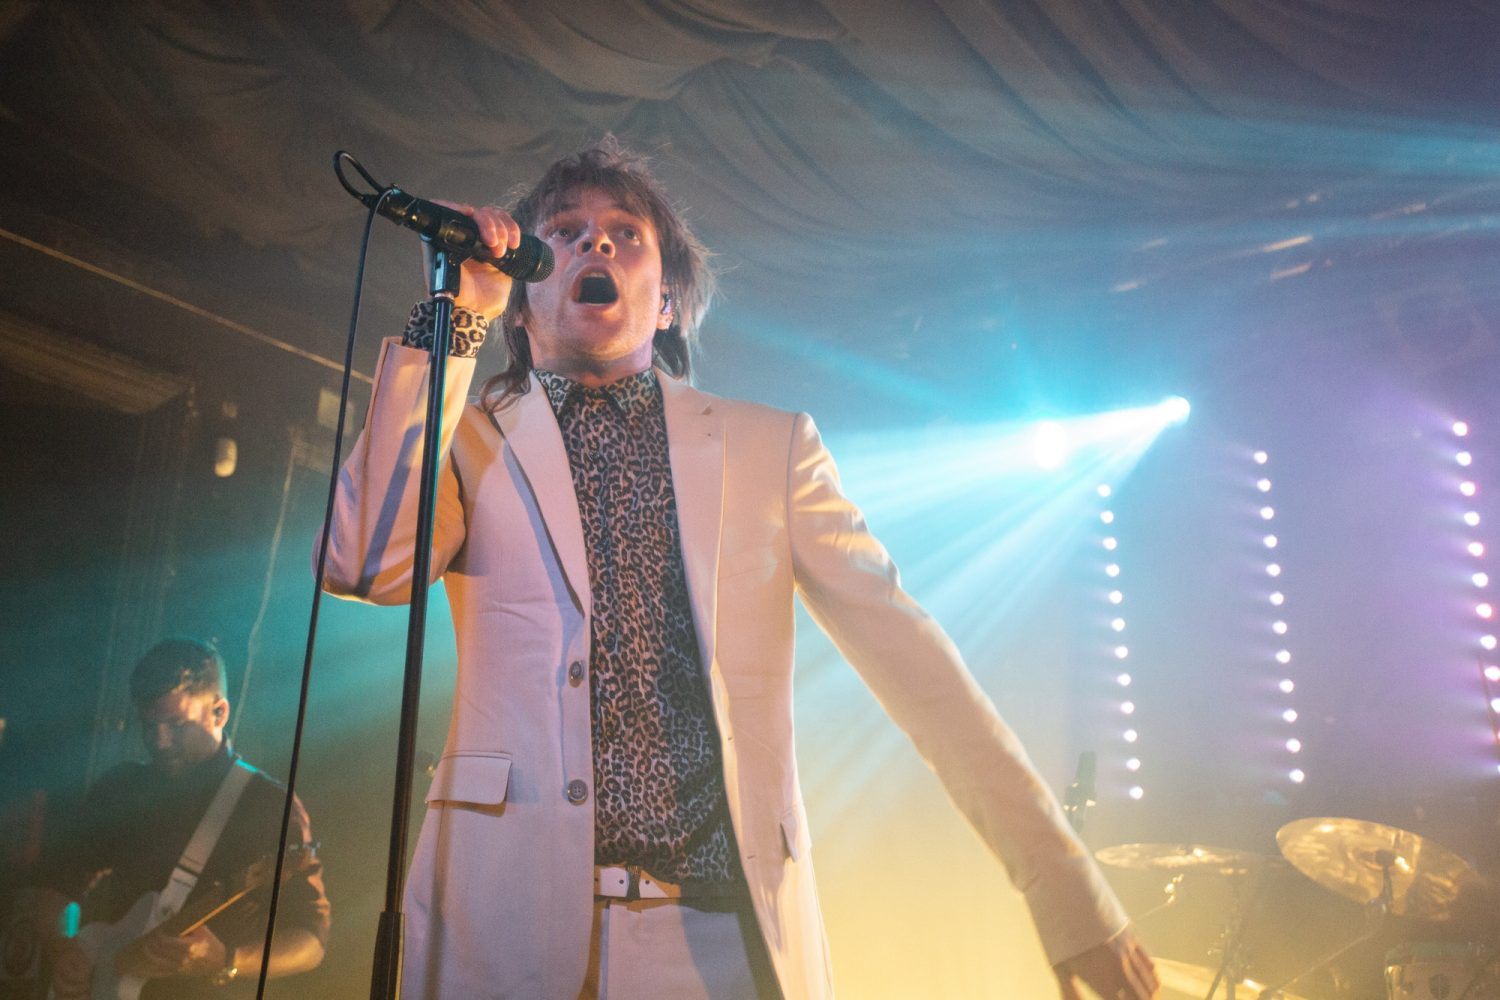 This is what Enter Shikari's little Brighton show for Nordoff Robbins looked like